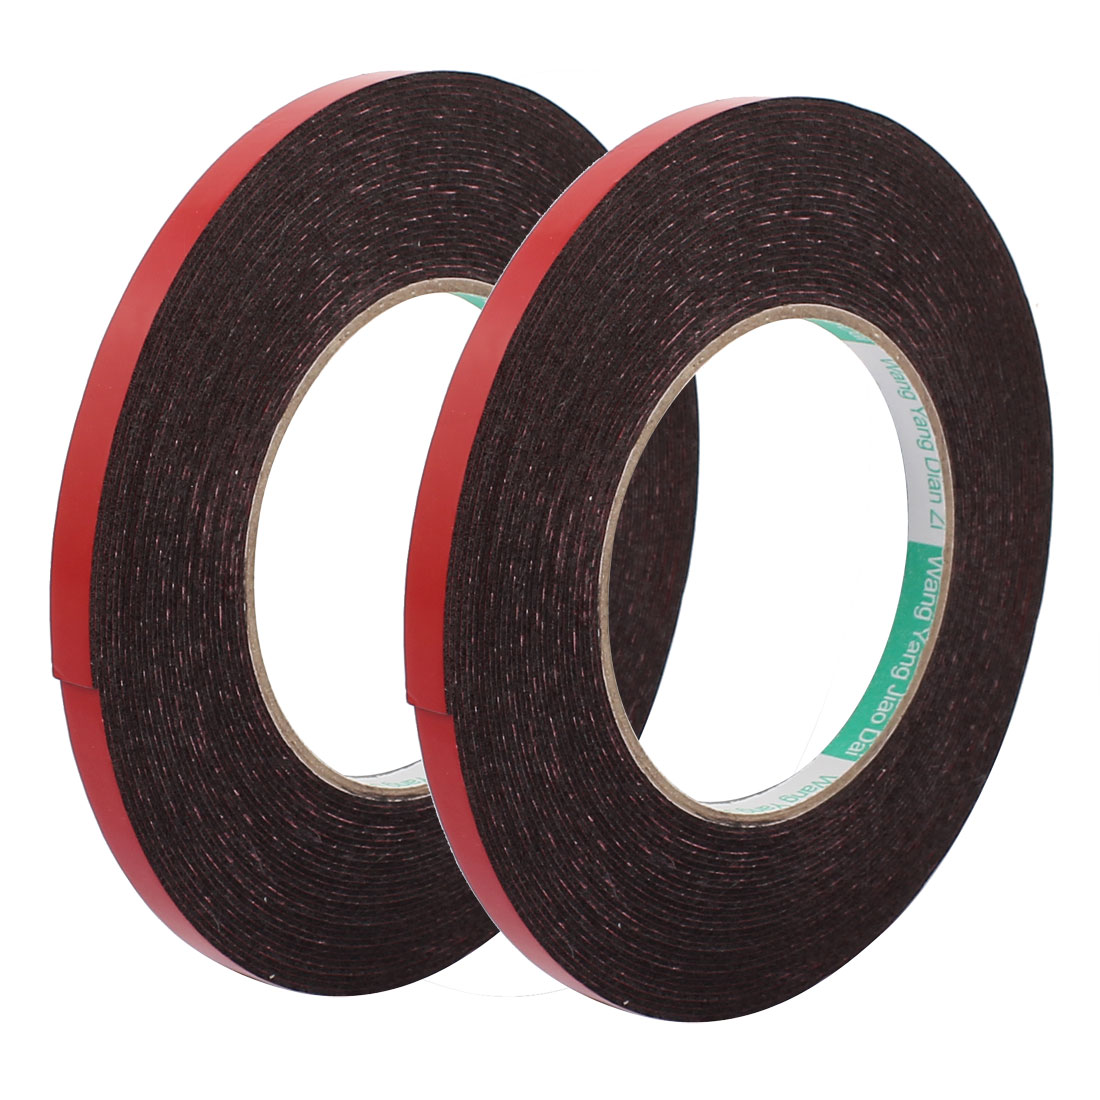 2pcs 8mm x 1mm Double Sided Self Adhesive Shockproof Sponge Foam Tape 10M Length